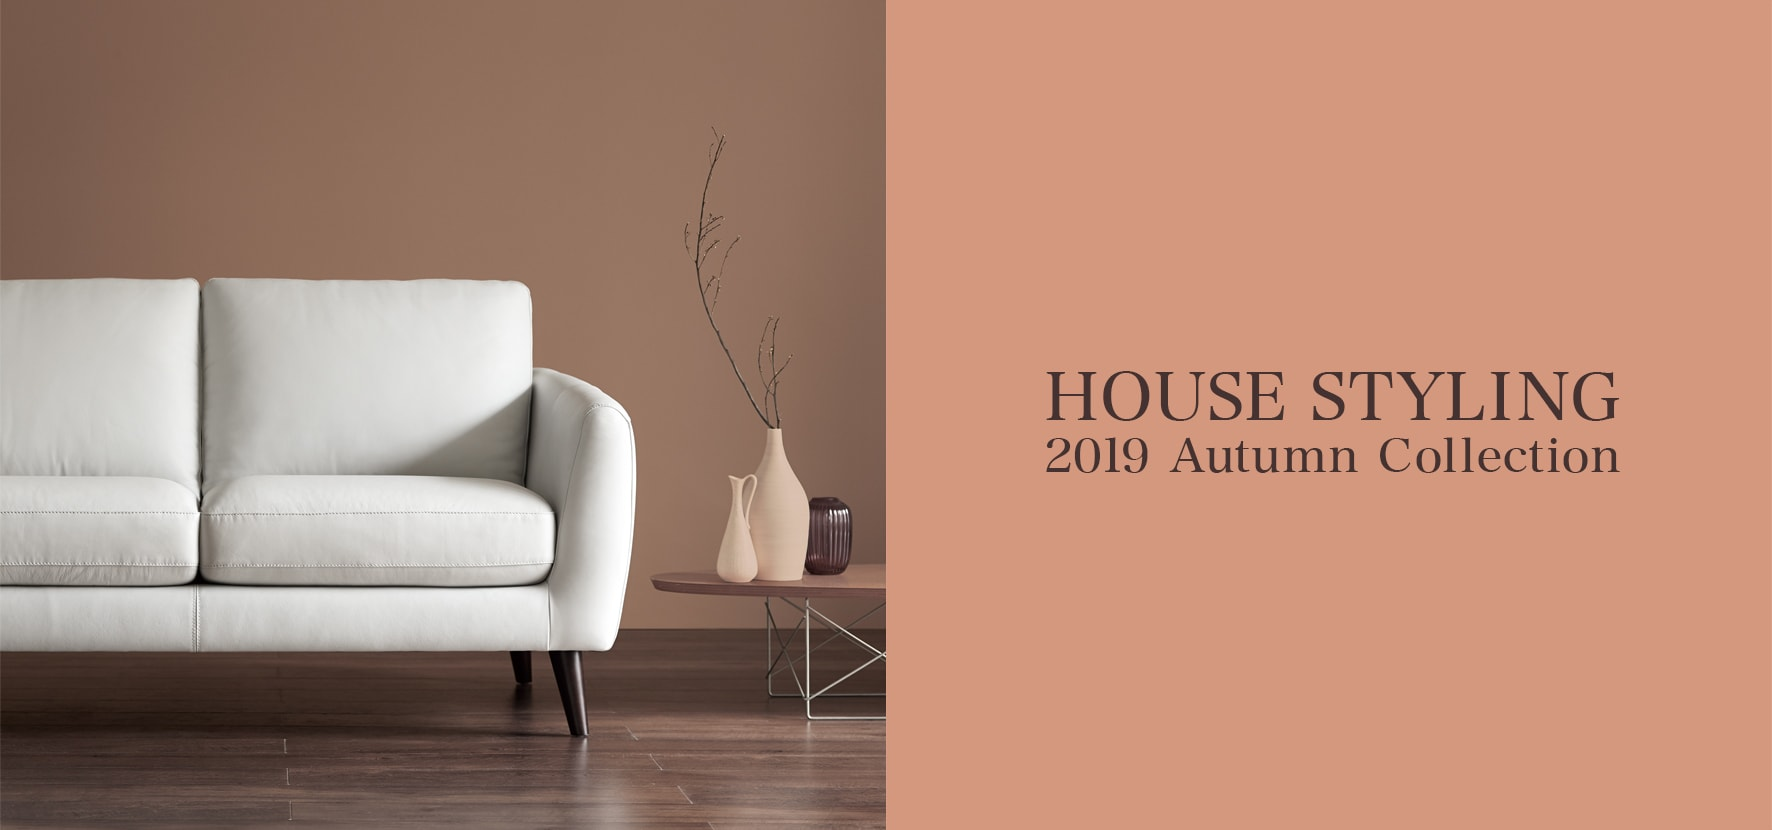 HOUSE STYLING|2019 Autumn Winter Collection